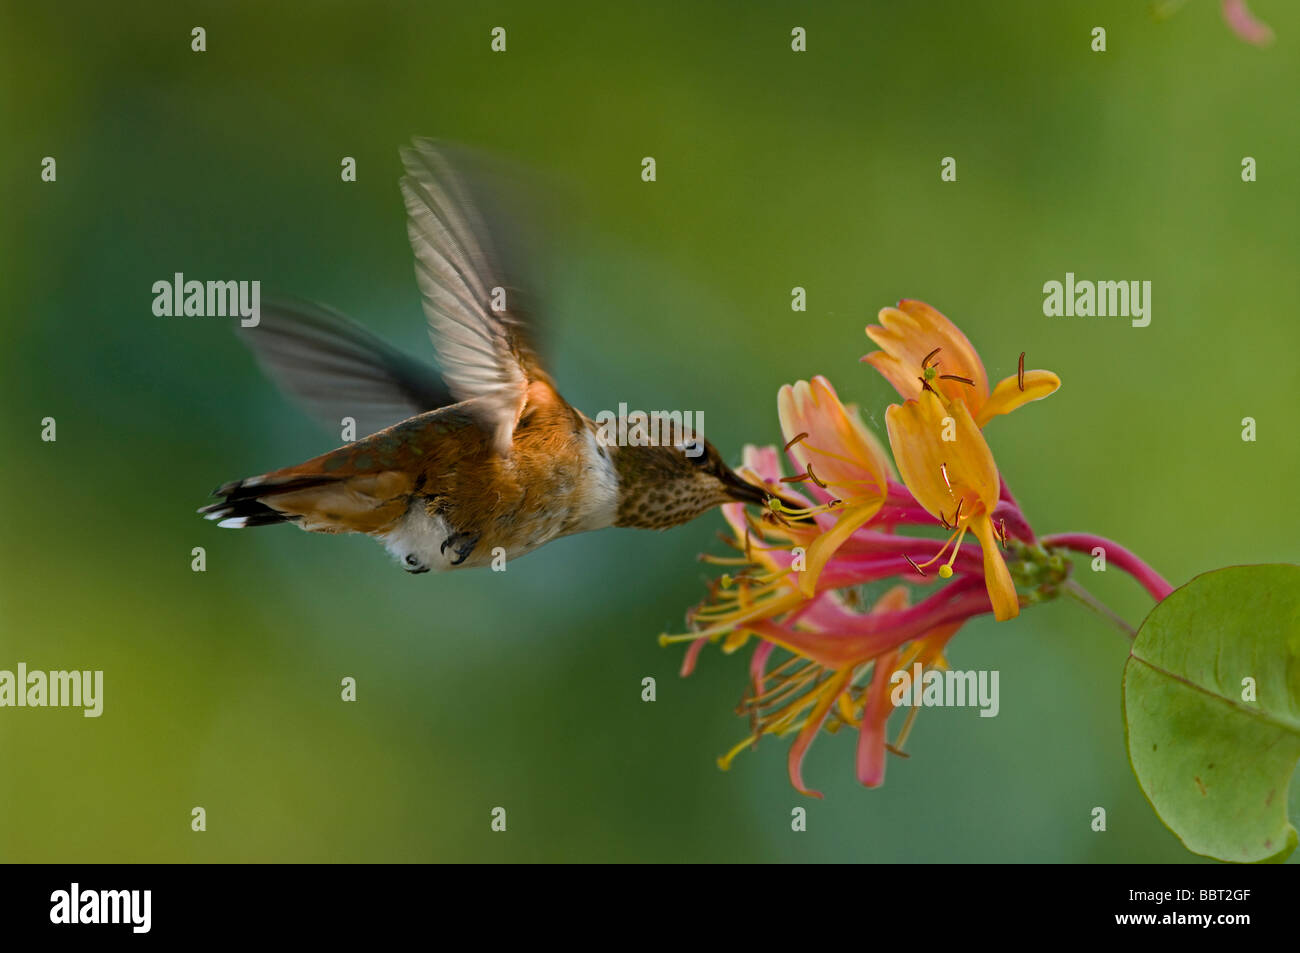 Humming bird sipping nectar  from honeysuckle flower - Stock Image